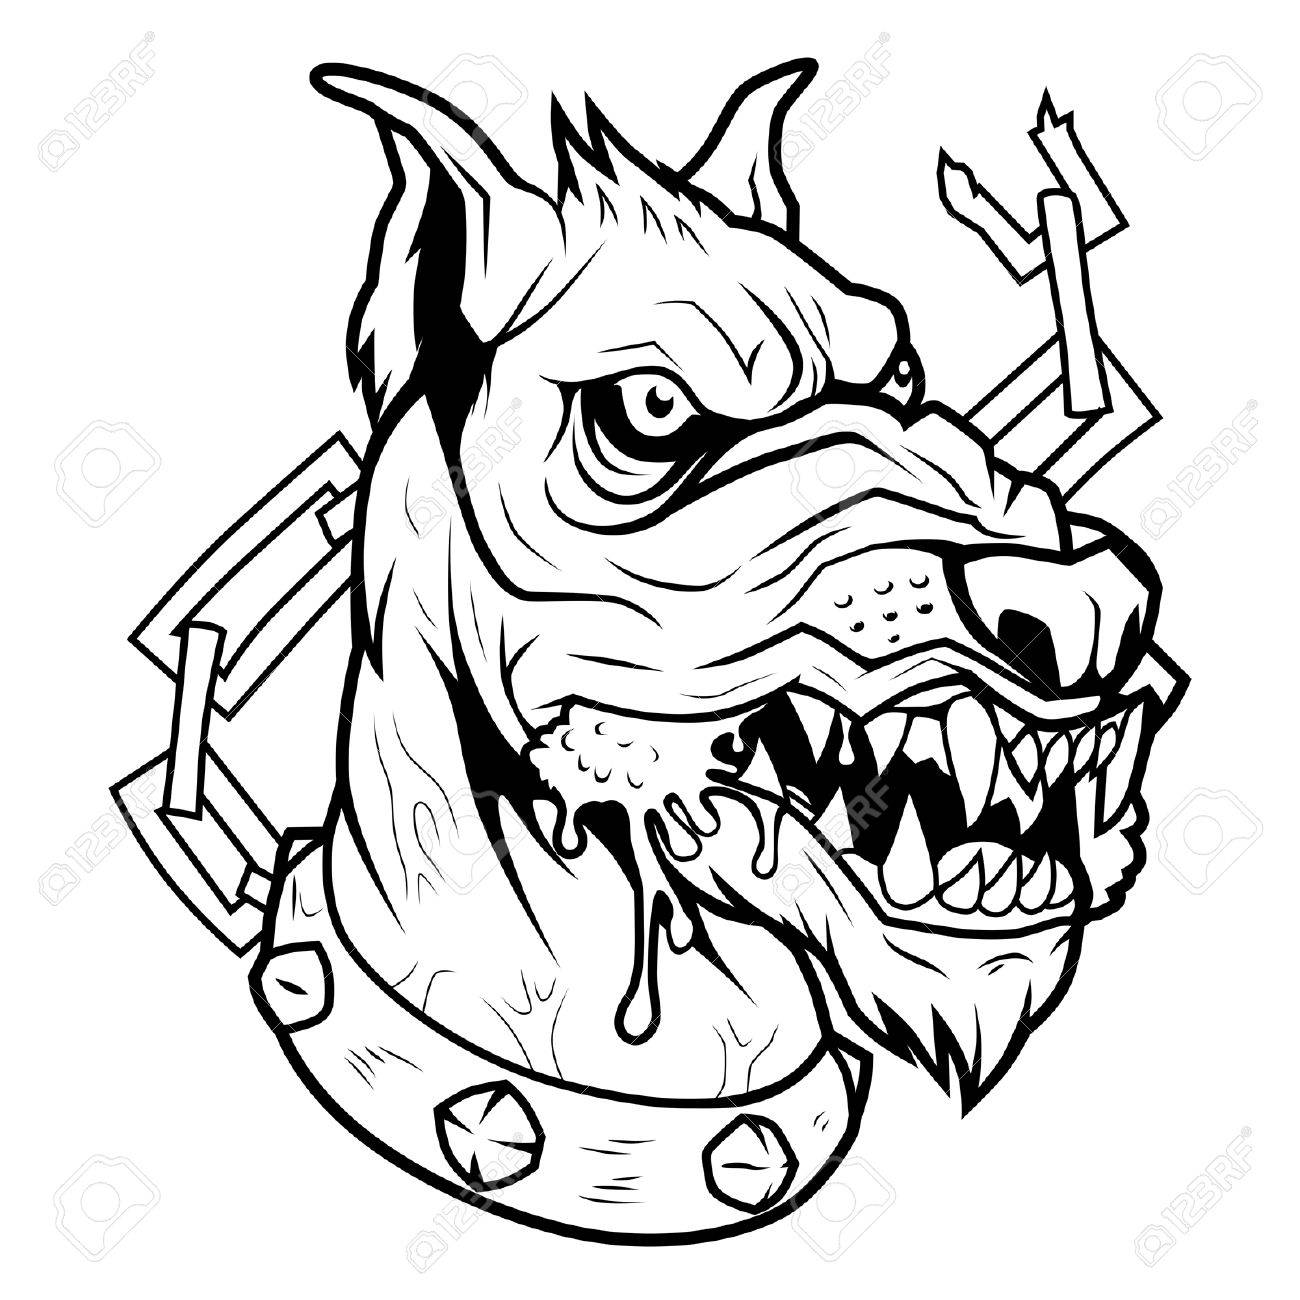 1300x1300 Mad Dog Bw Royalty Free Cliparts, Vectors, And Stock Illustration